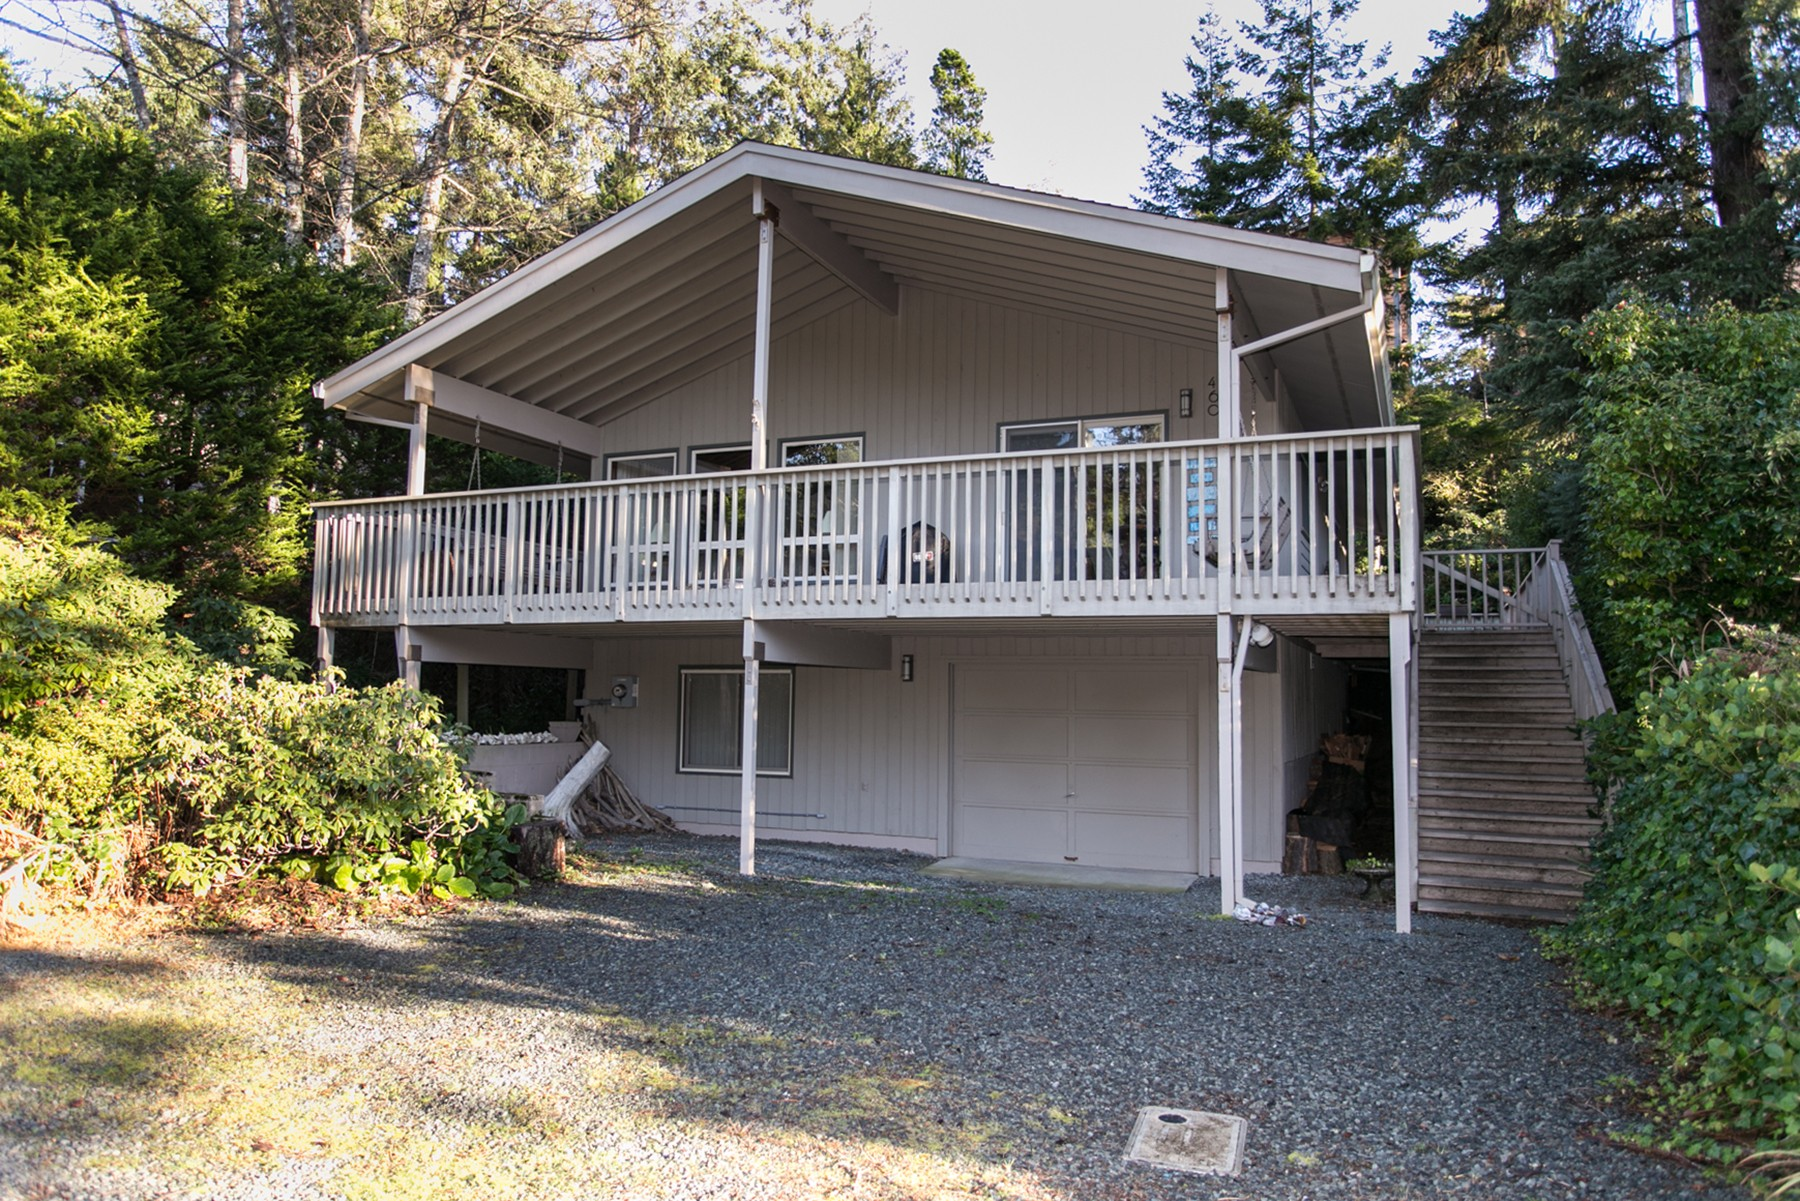 Maison unifamiliale pour l Vente à Just a Short Walk to the Beach 460 1st Street N. Manzanita, Oregon 97130 États-Unis